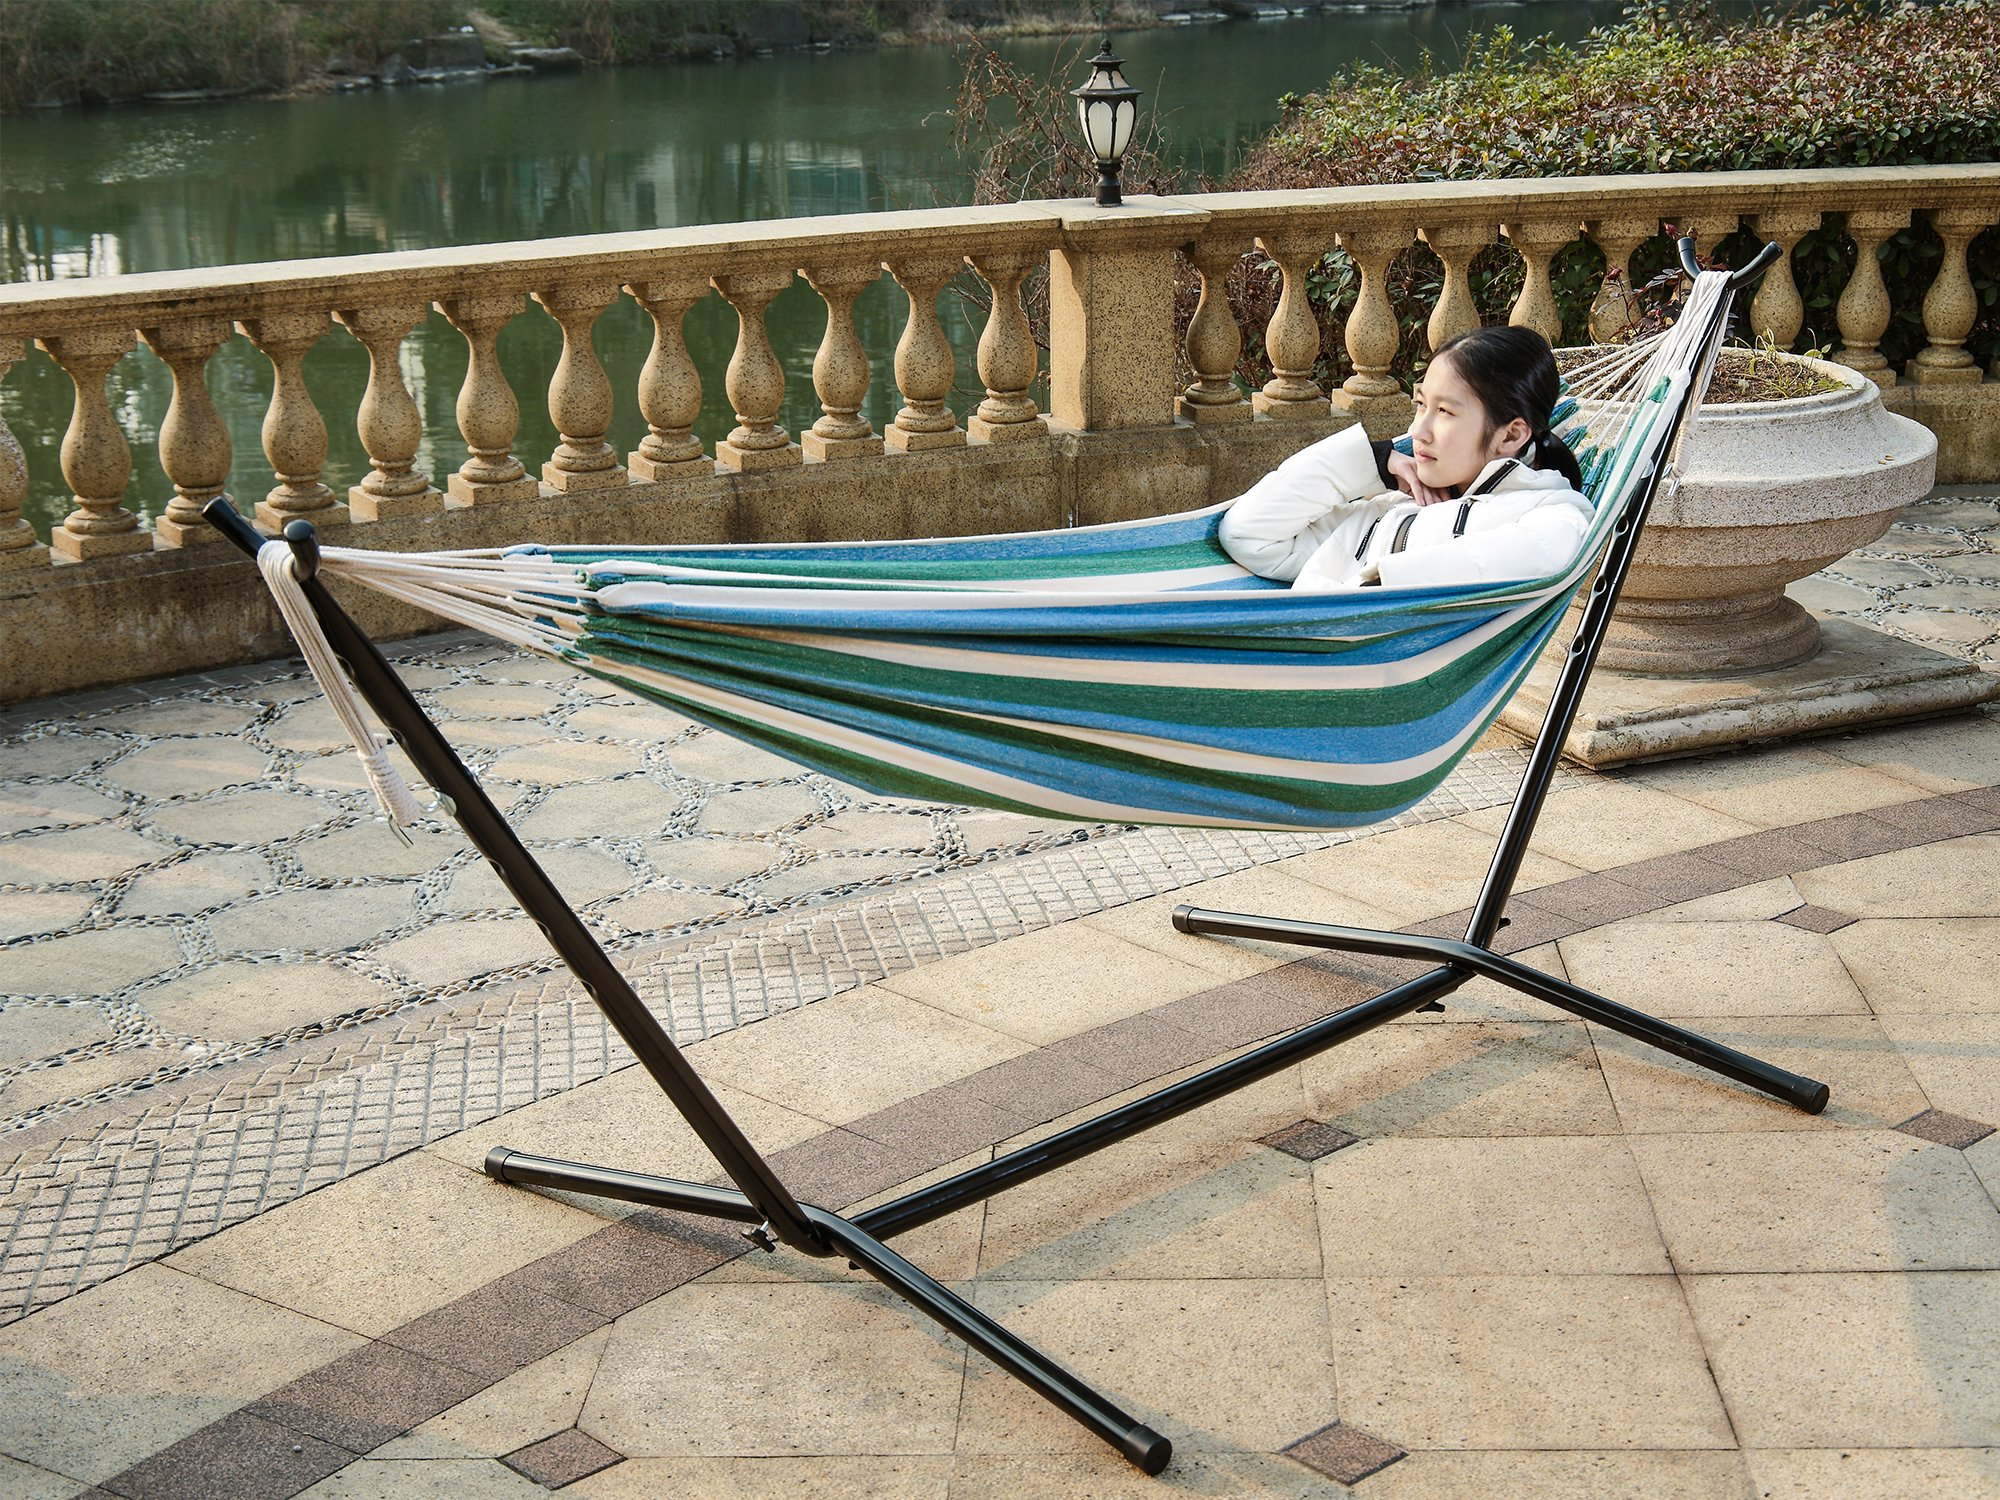 9 ft Double Hammock With Space Saving Steel Stand Two Adults Adjustable Hammock Bed Includes Portable Carrying Case 440 lbs Capacity